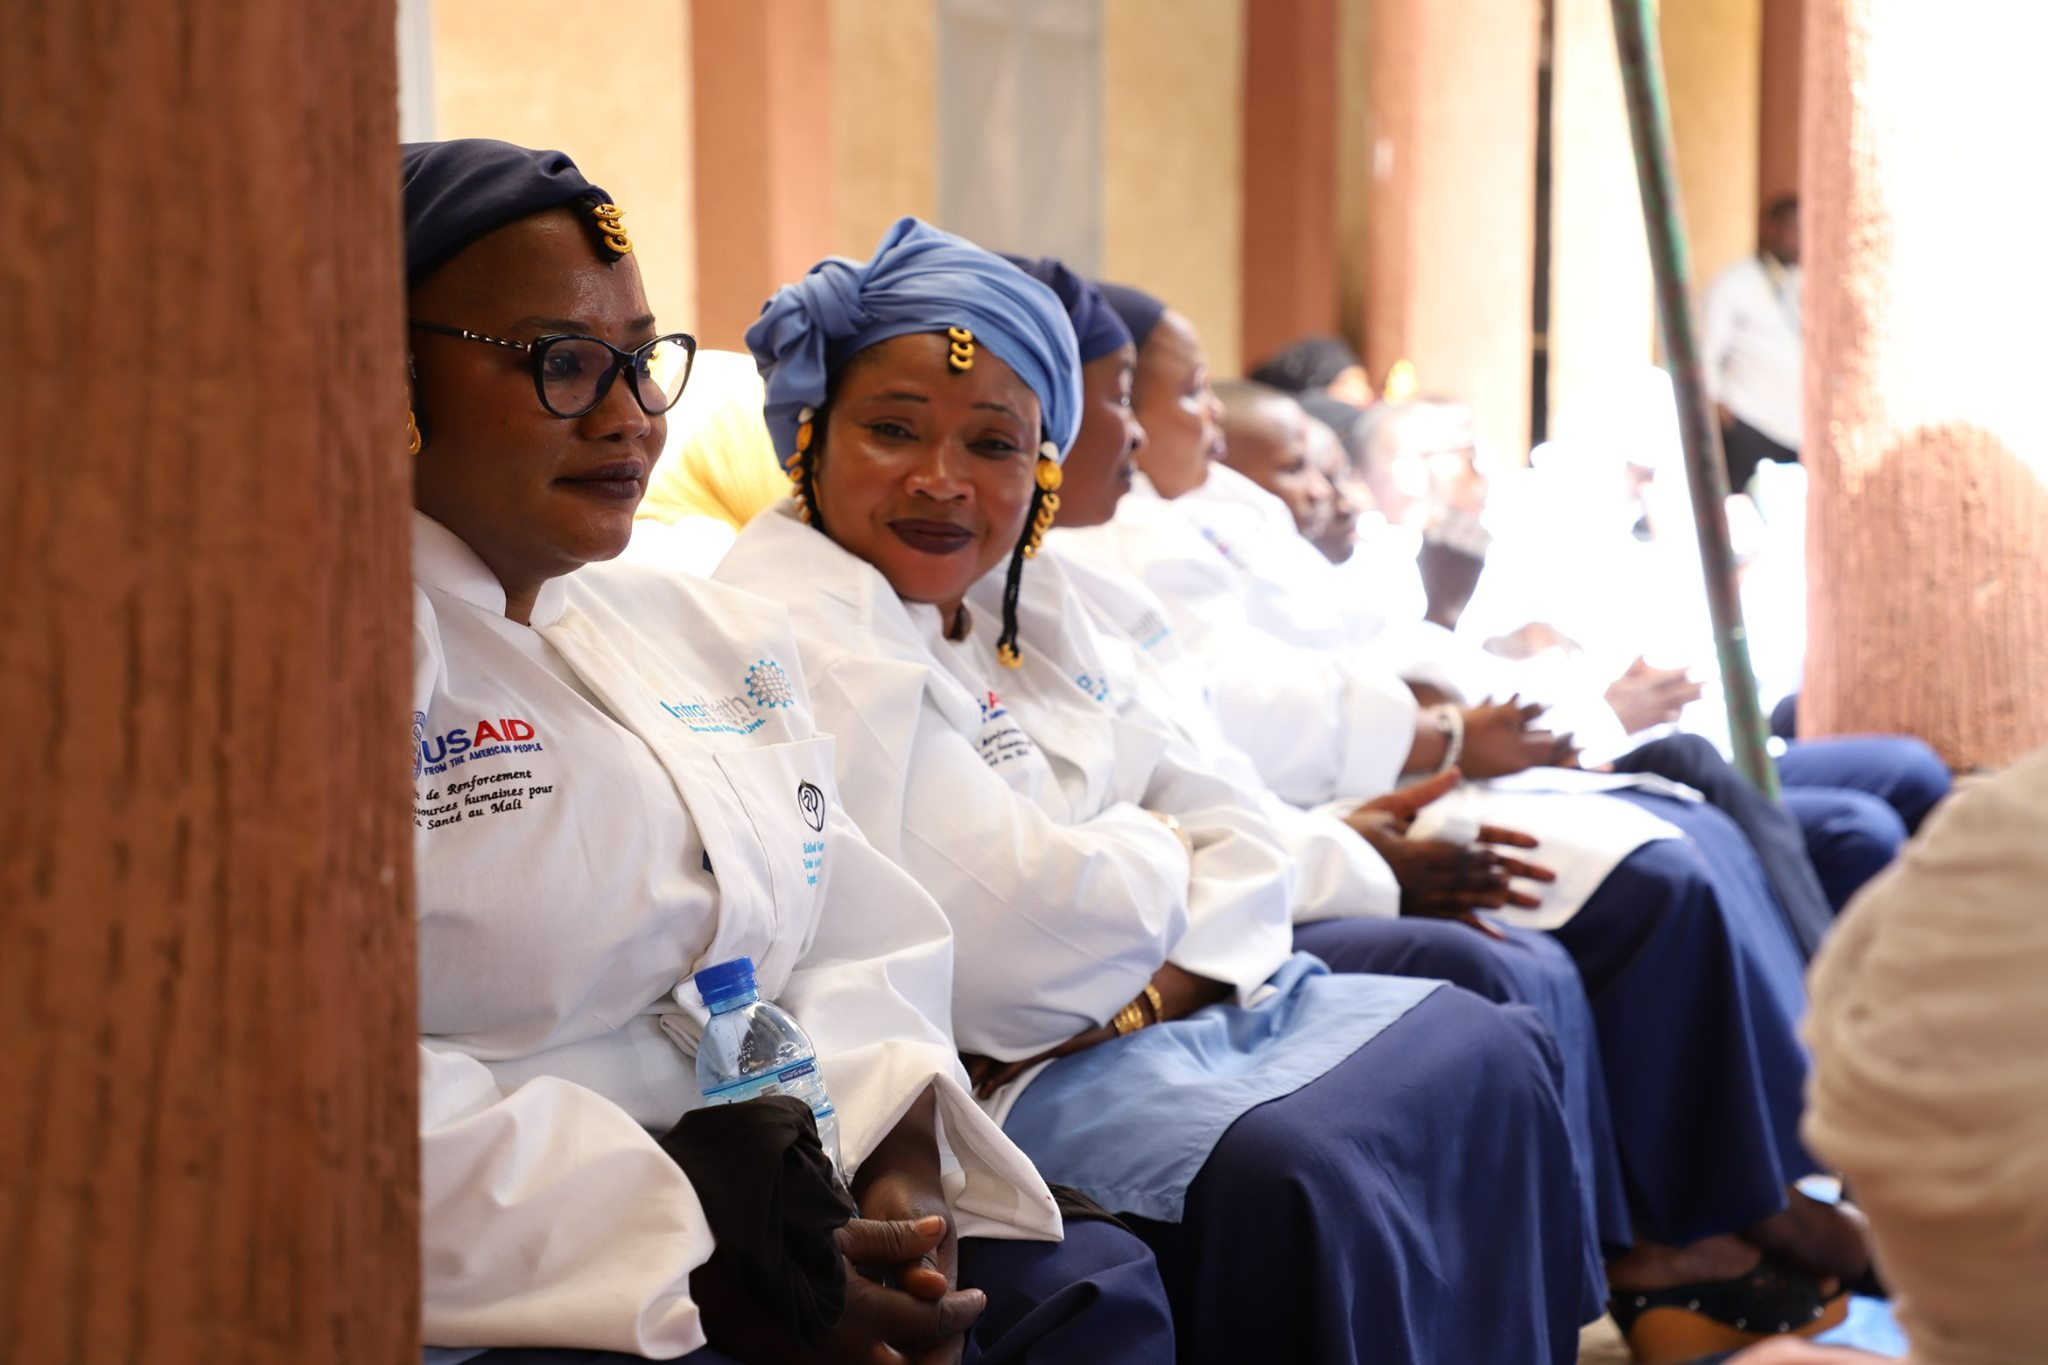 Official graduation ceremony of the Gao School of Nurses in February 2020. Photos taken by Emilienne Adibone Assama for IntraHealth International.